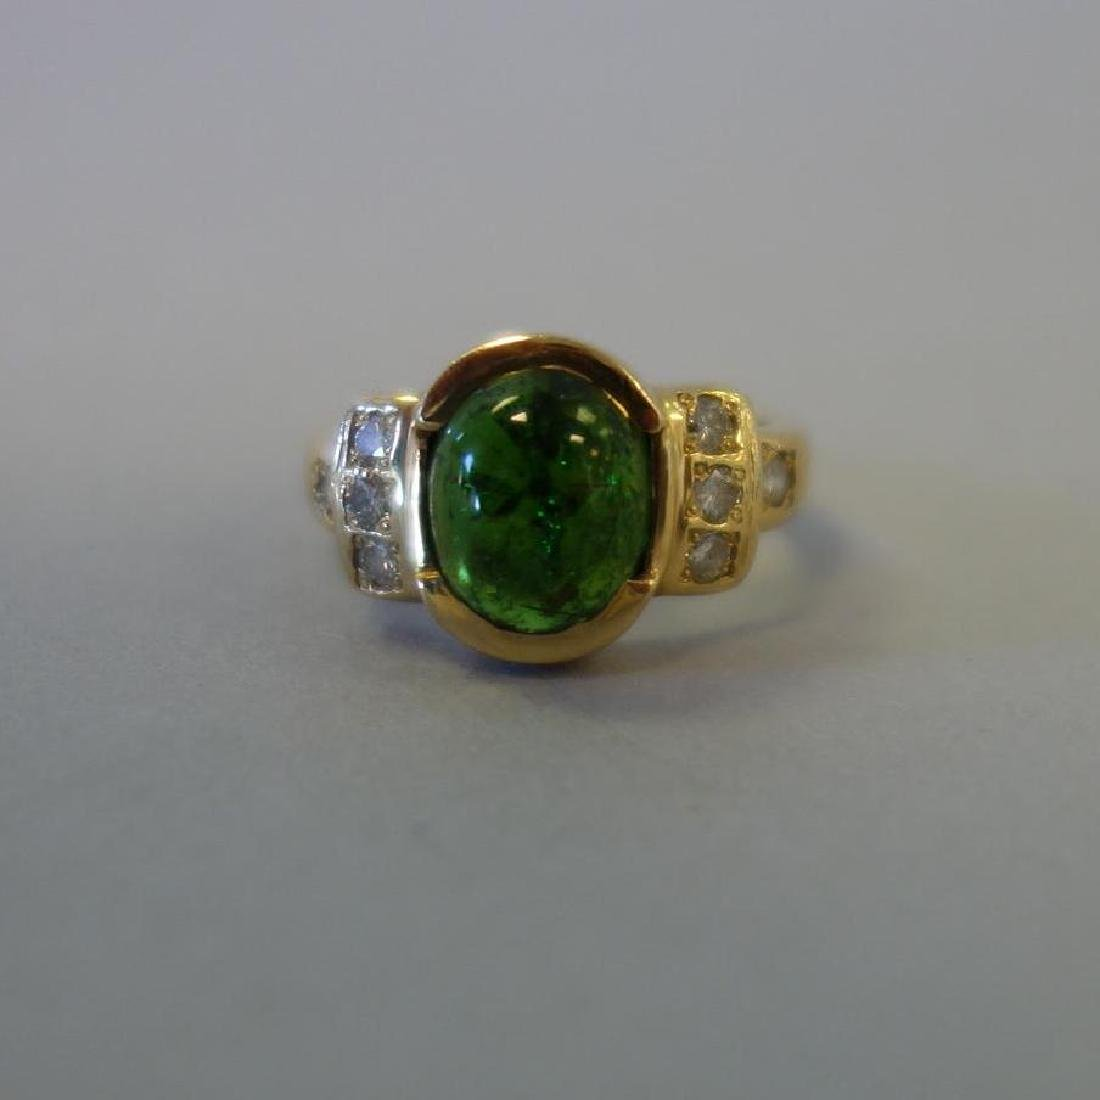 Green Tourmaline & Diamond 14K Gold Ring - 2